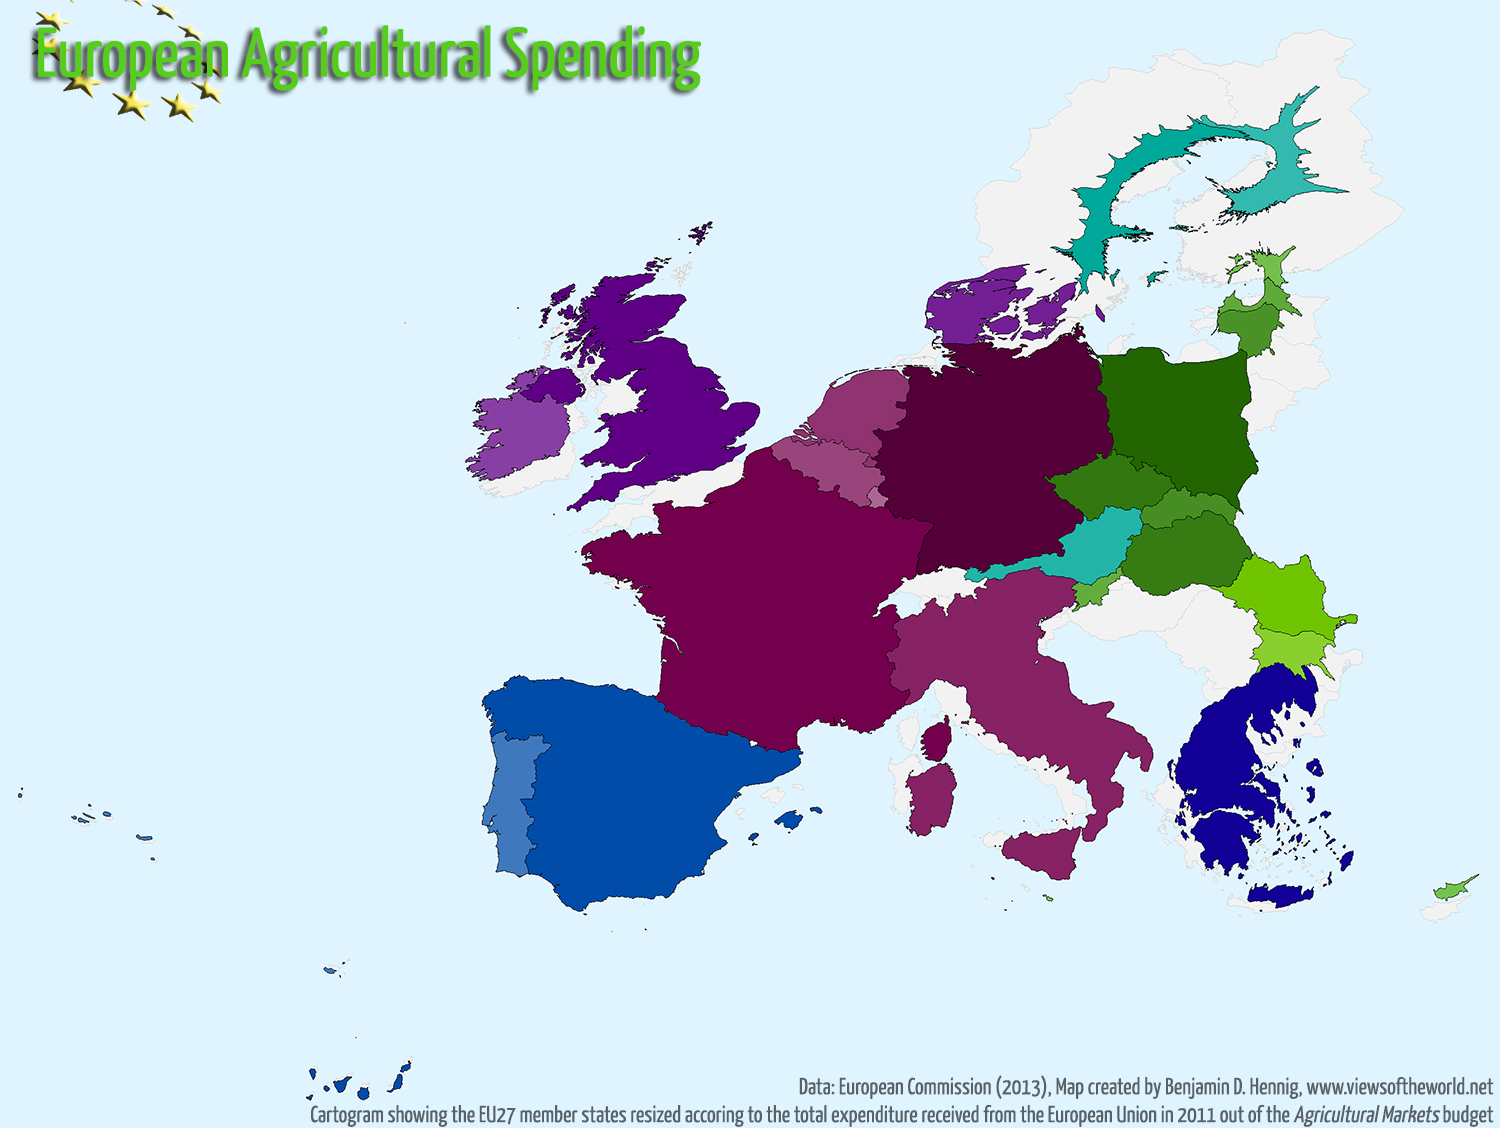 Cartogram of European Agricultural Spending